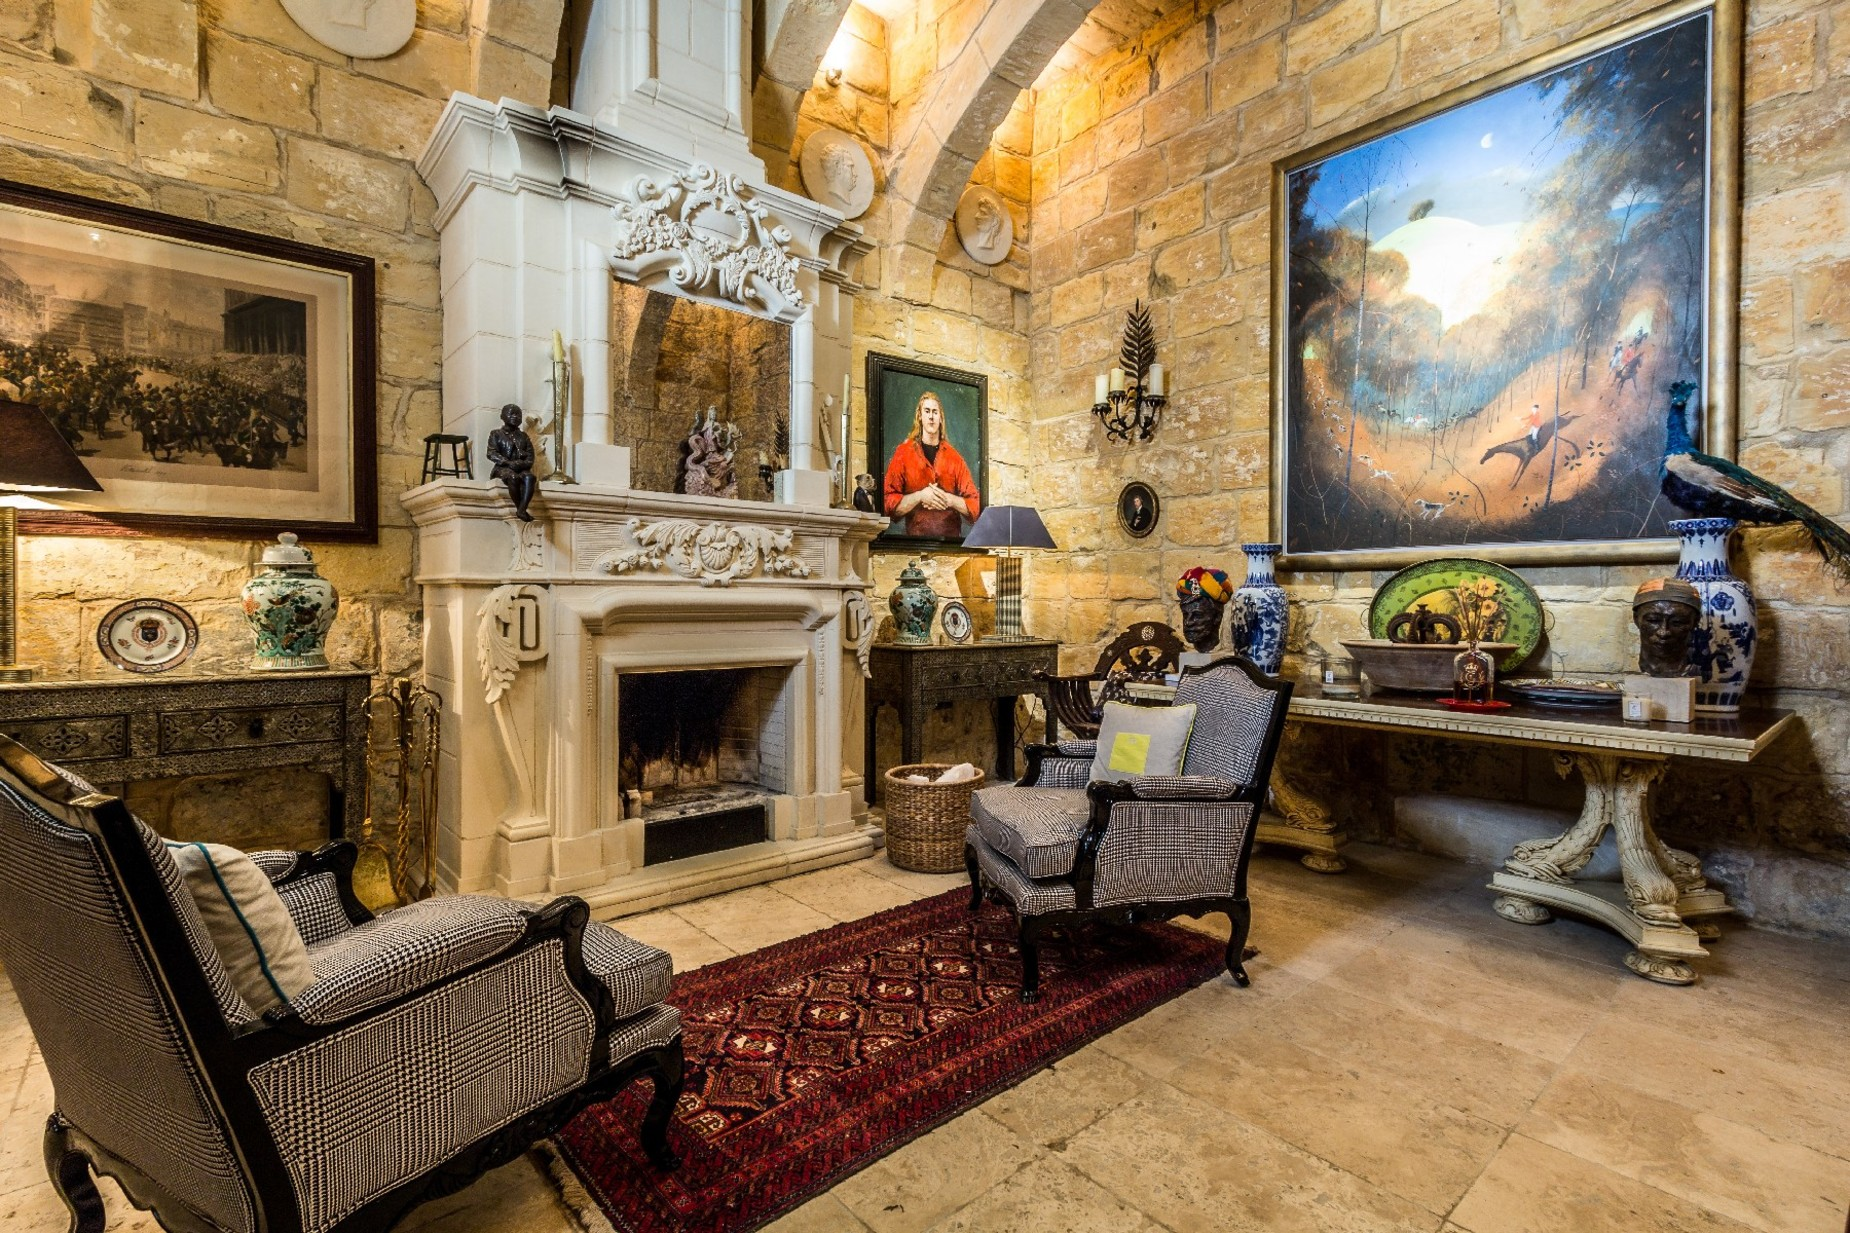 5 bed Town House For Rent in Cospicua, Cospicua - thumb 3